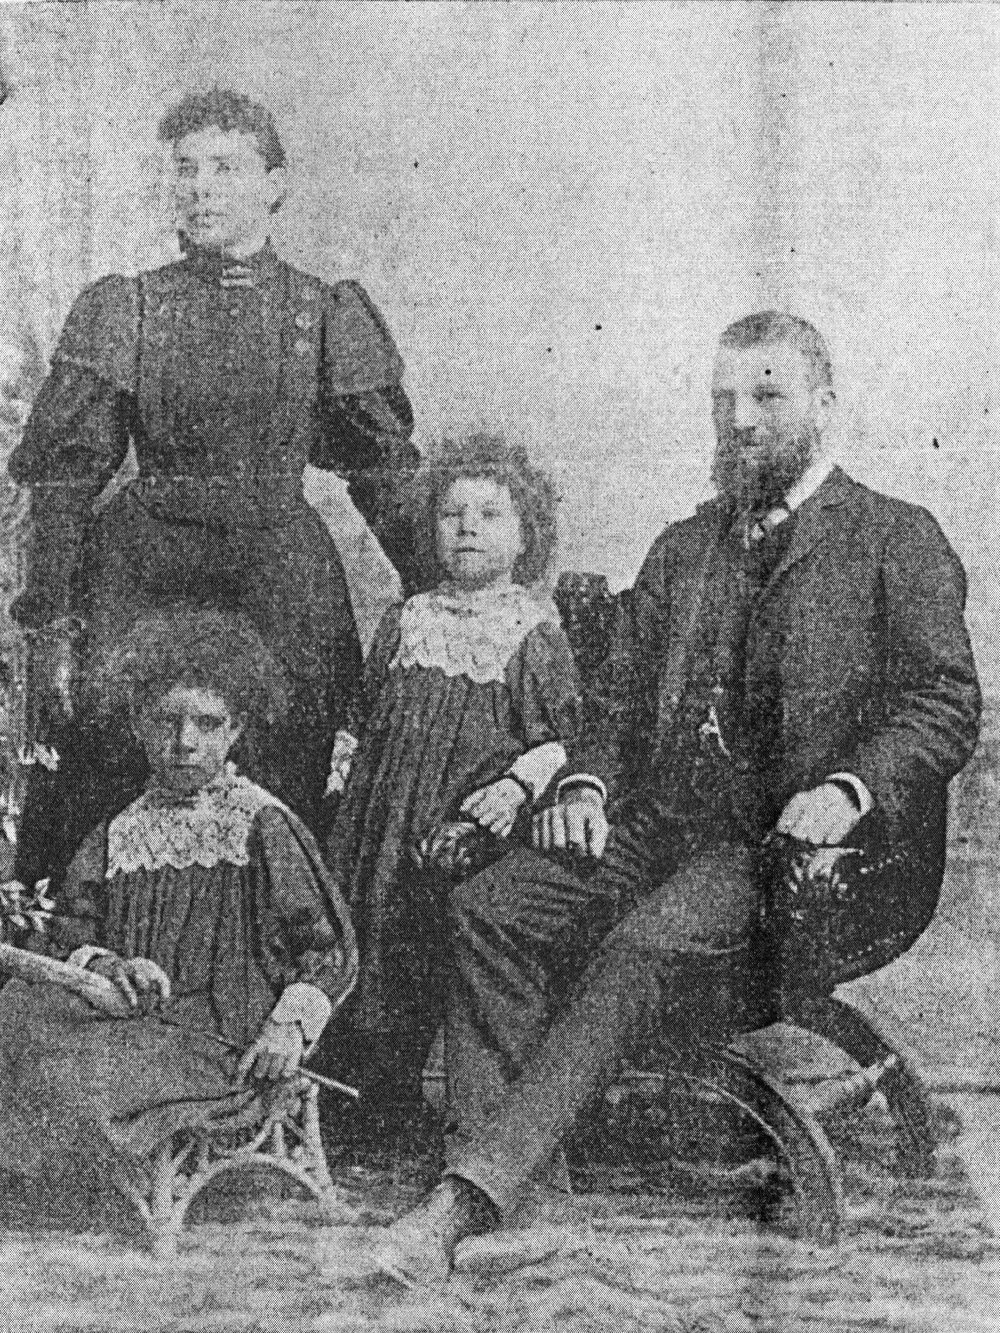 Rosalinda Fox with her husband, John, and daughters Violet (left) and Esther (centre), in The Sunday Times, 5 March 1899. From Murder on Gallop's Gardens, Dalkeith, by Robert Couzens.